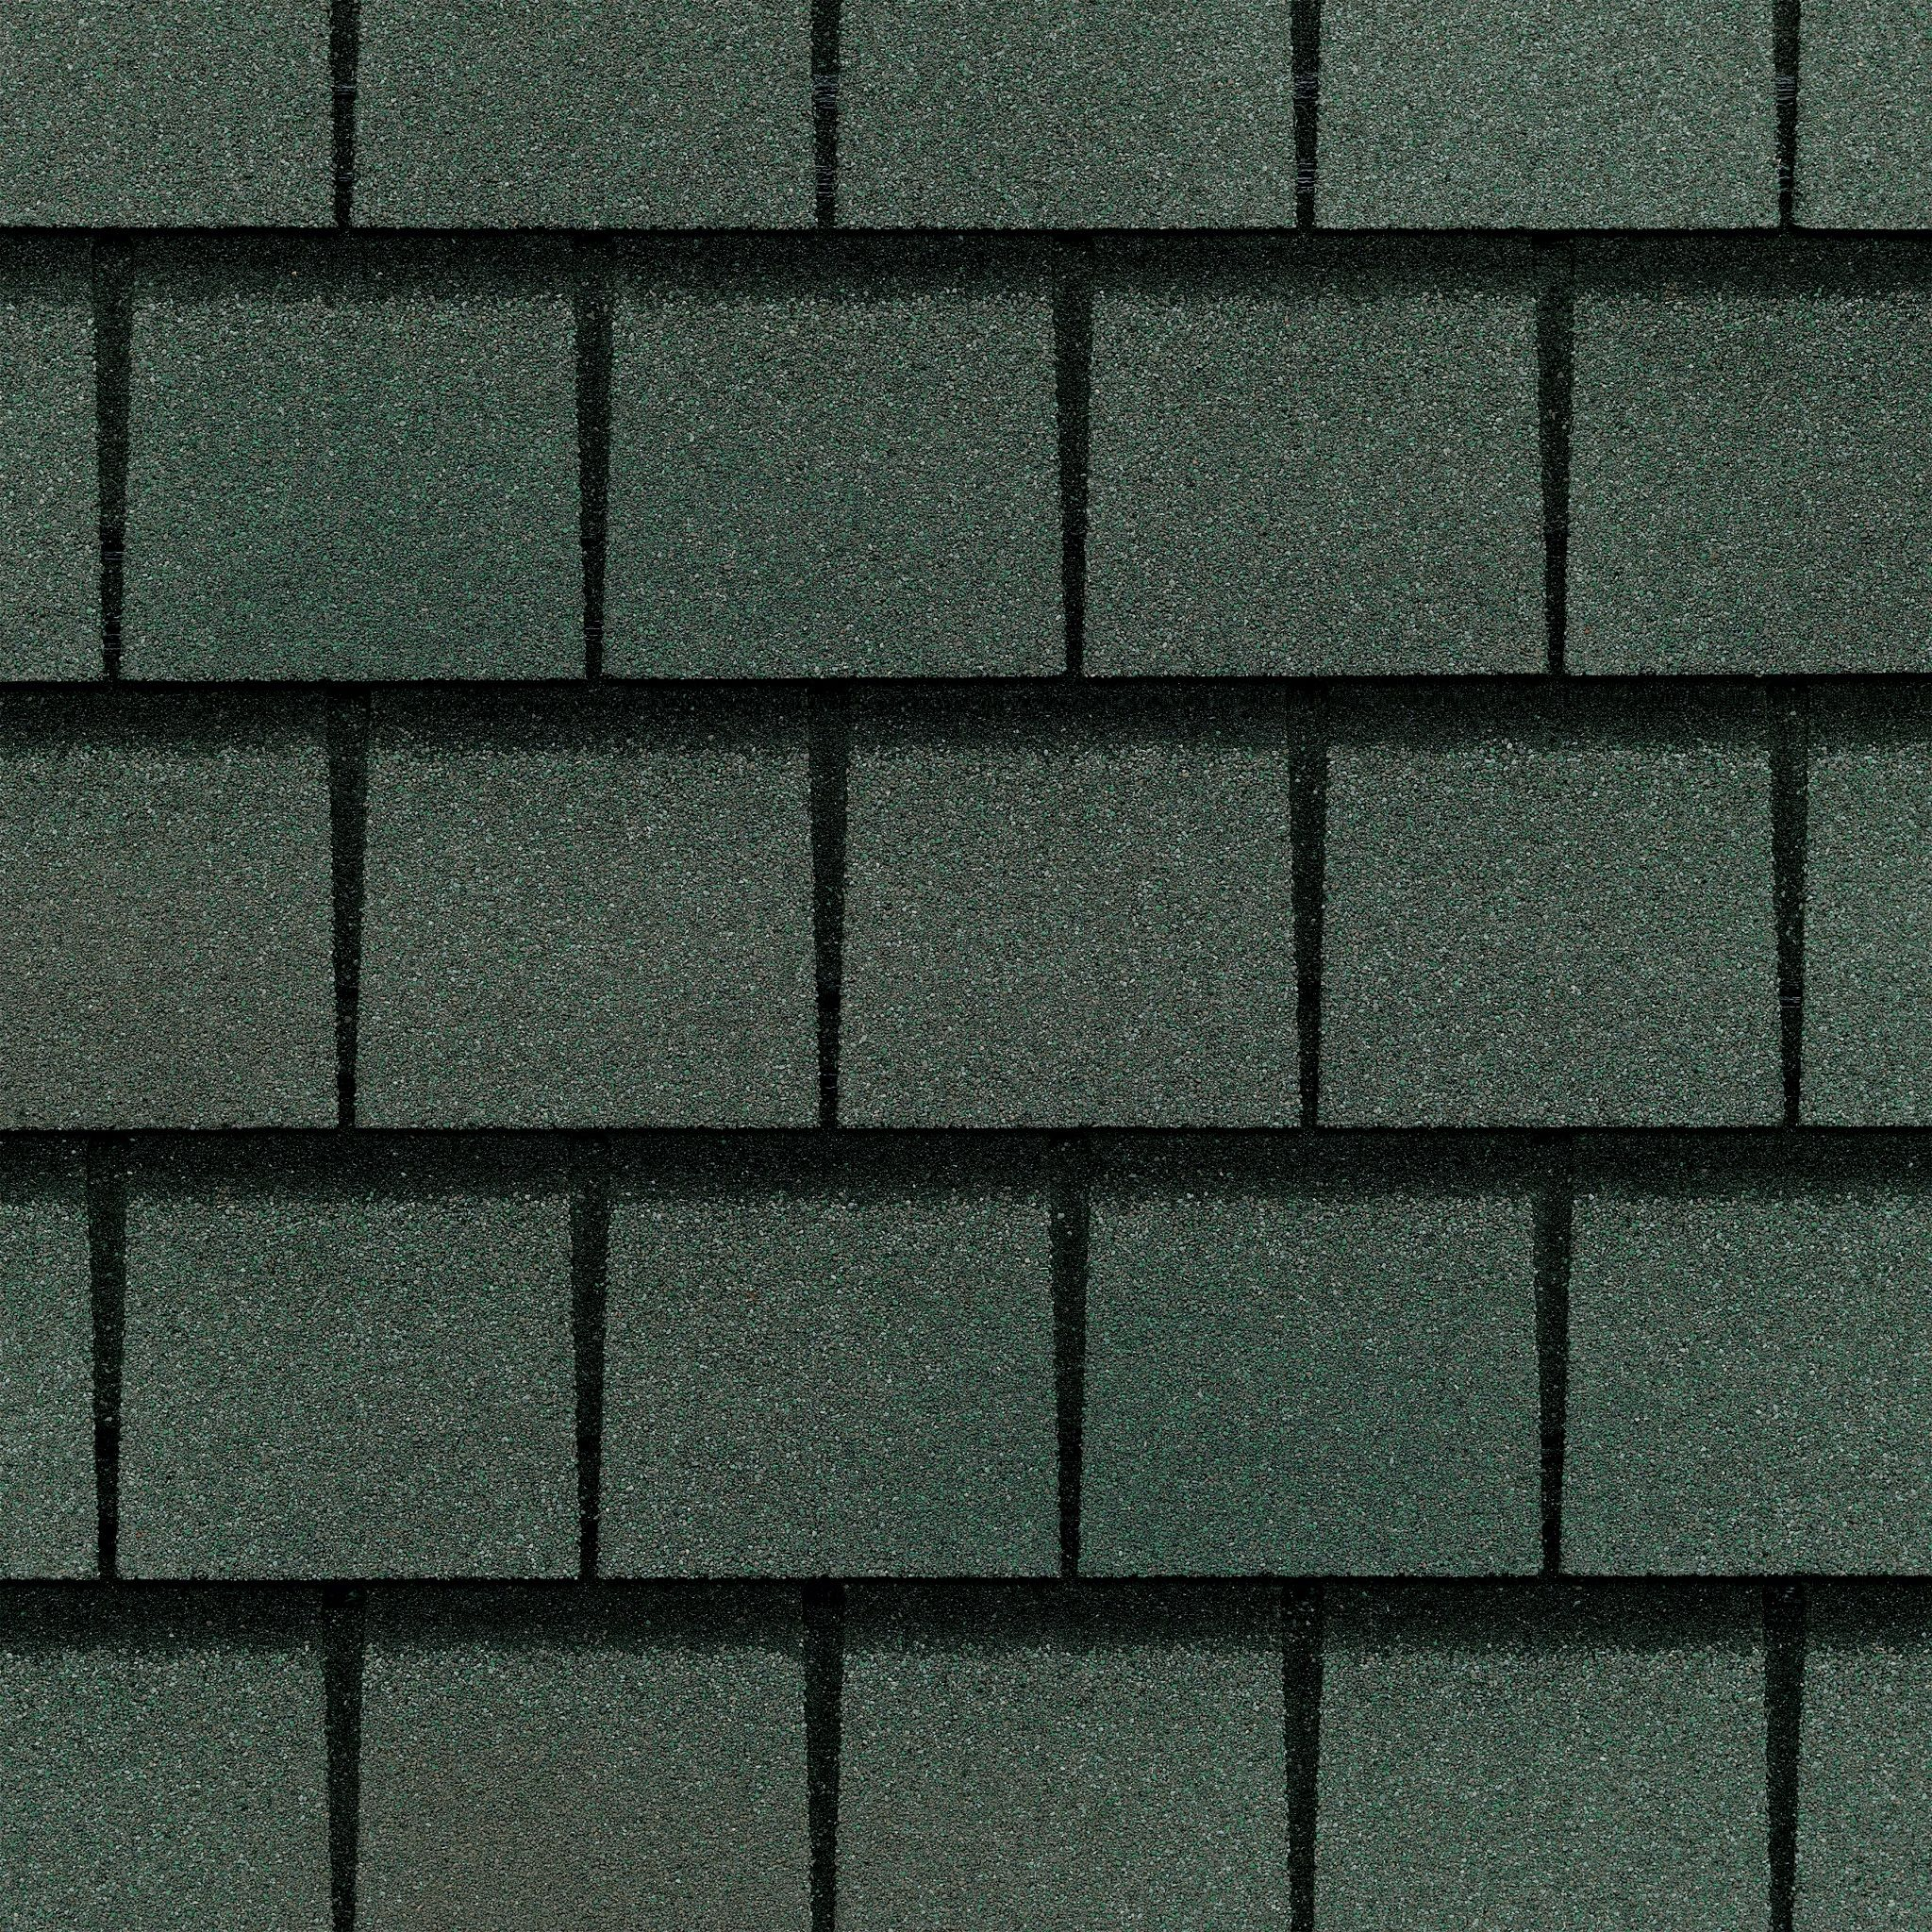 Roofing Shingles Prices >> Slateline Roofing Shingles Is A Slate Look Without The Price